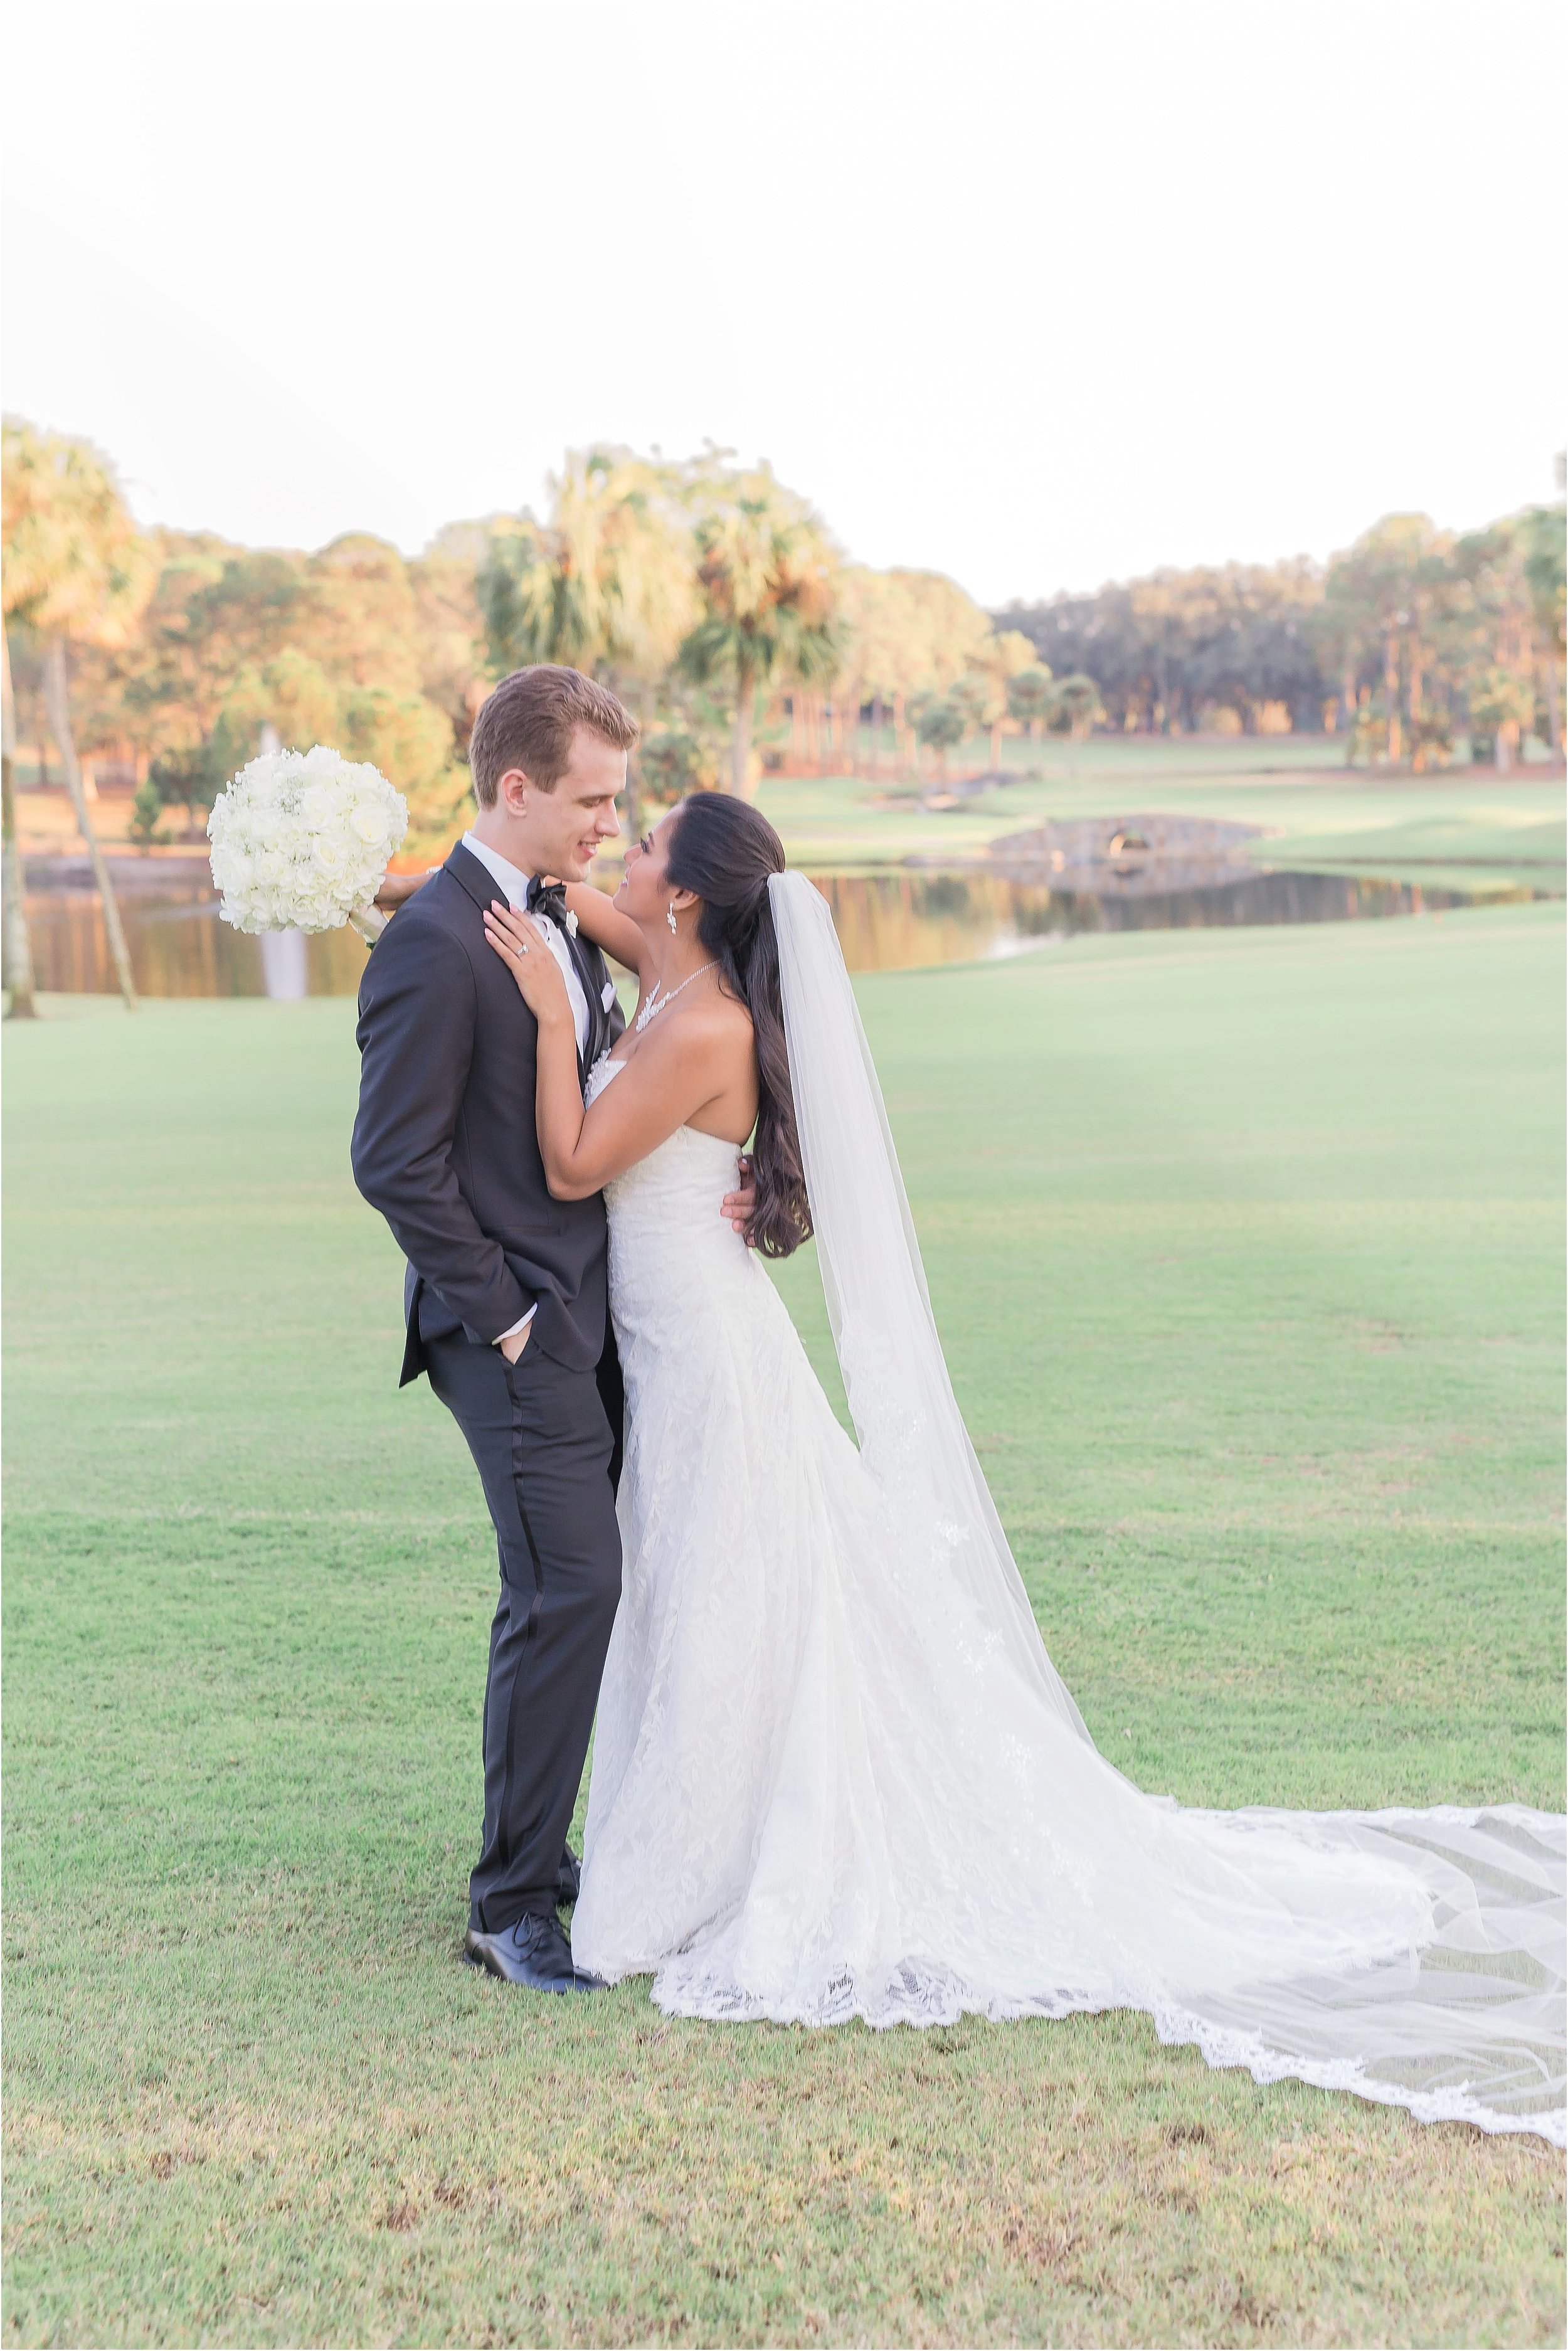 Romantic Bride and Groom Portraits with all white bouquet and tux